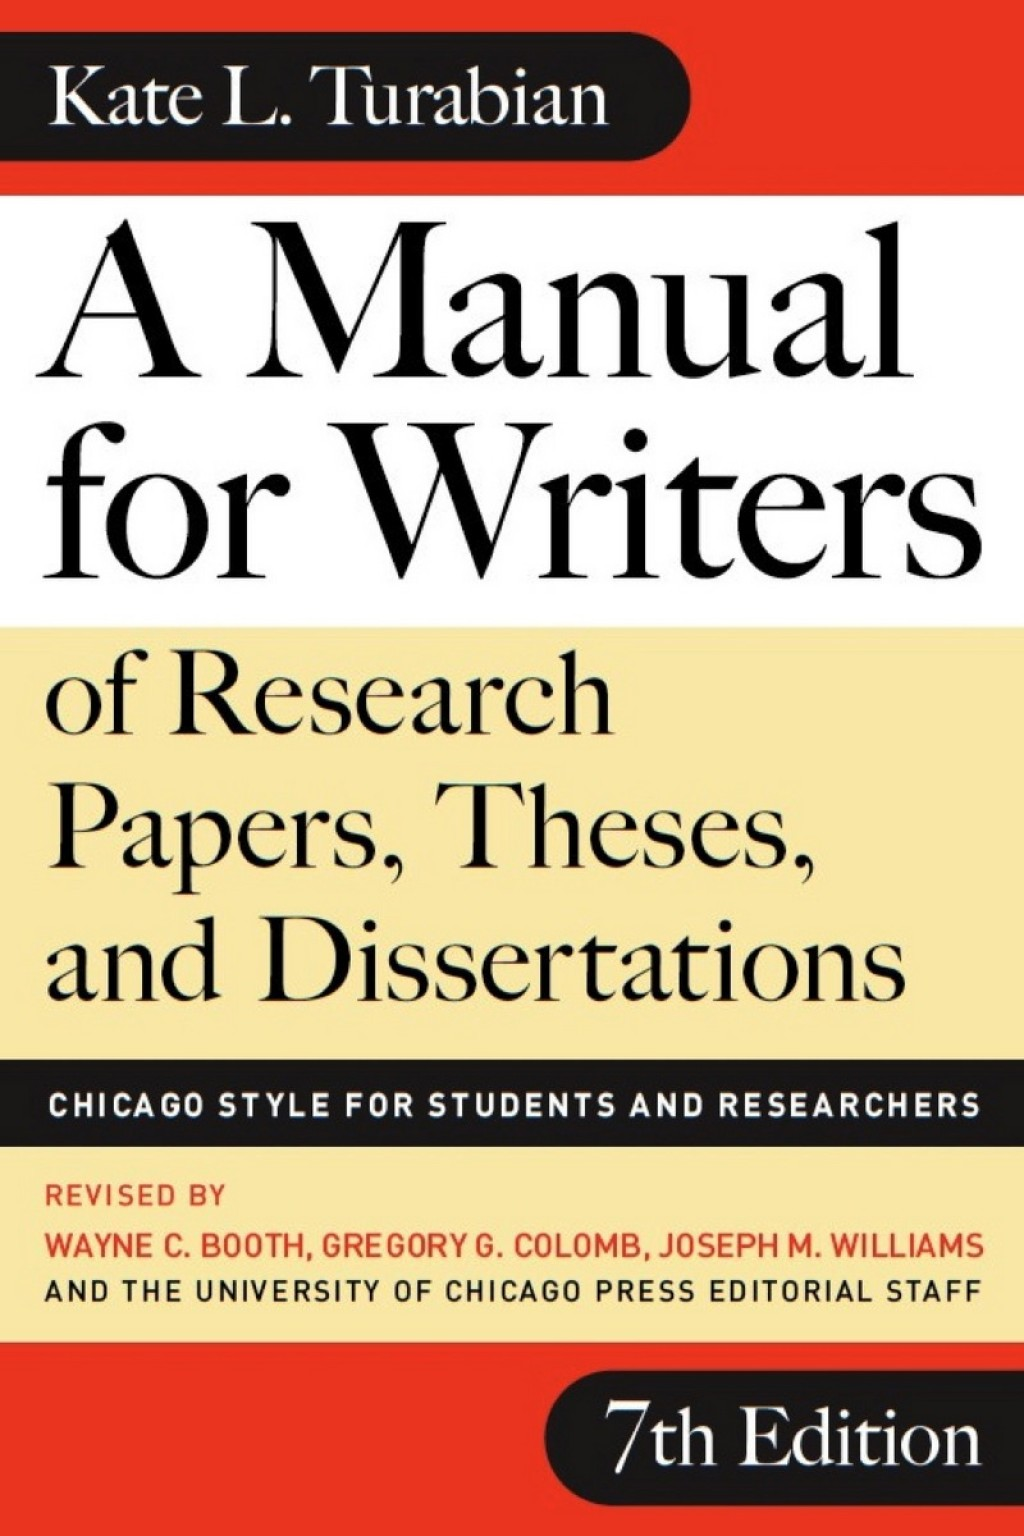 009 Research Paper Frontcover Manual For Writers Of Papers Theses And Sensational A Dissertations Eighth Edition Pdf 9th 8th Large